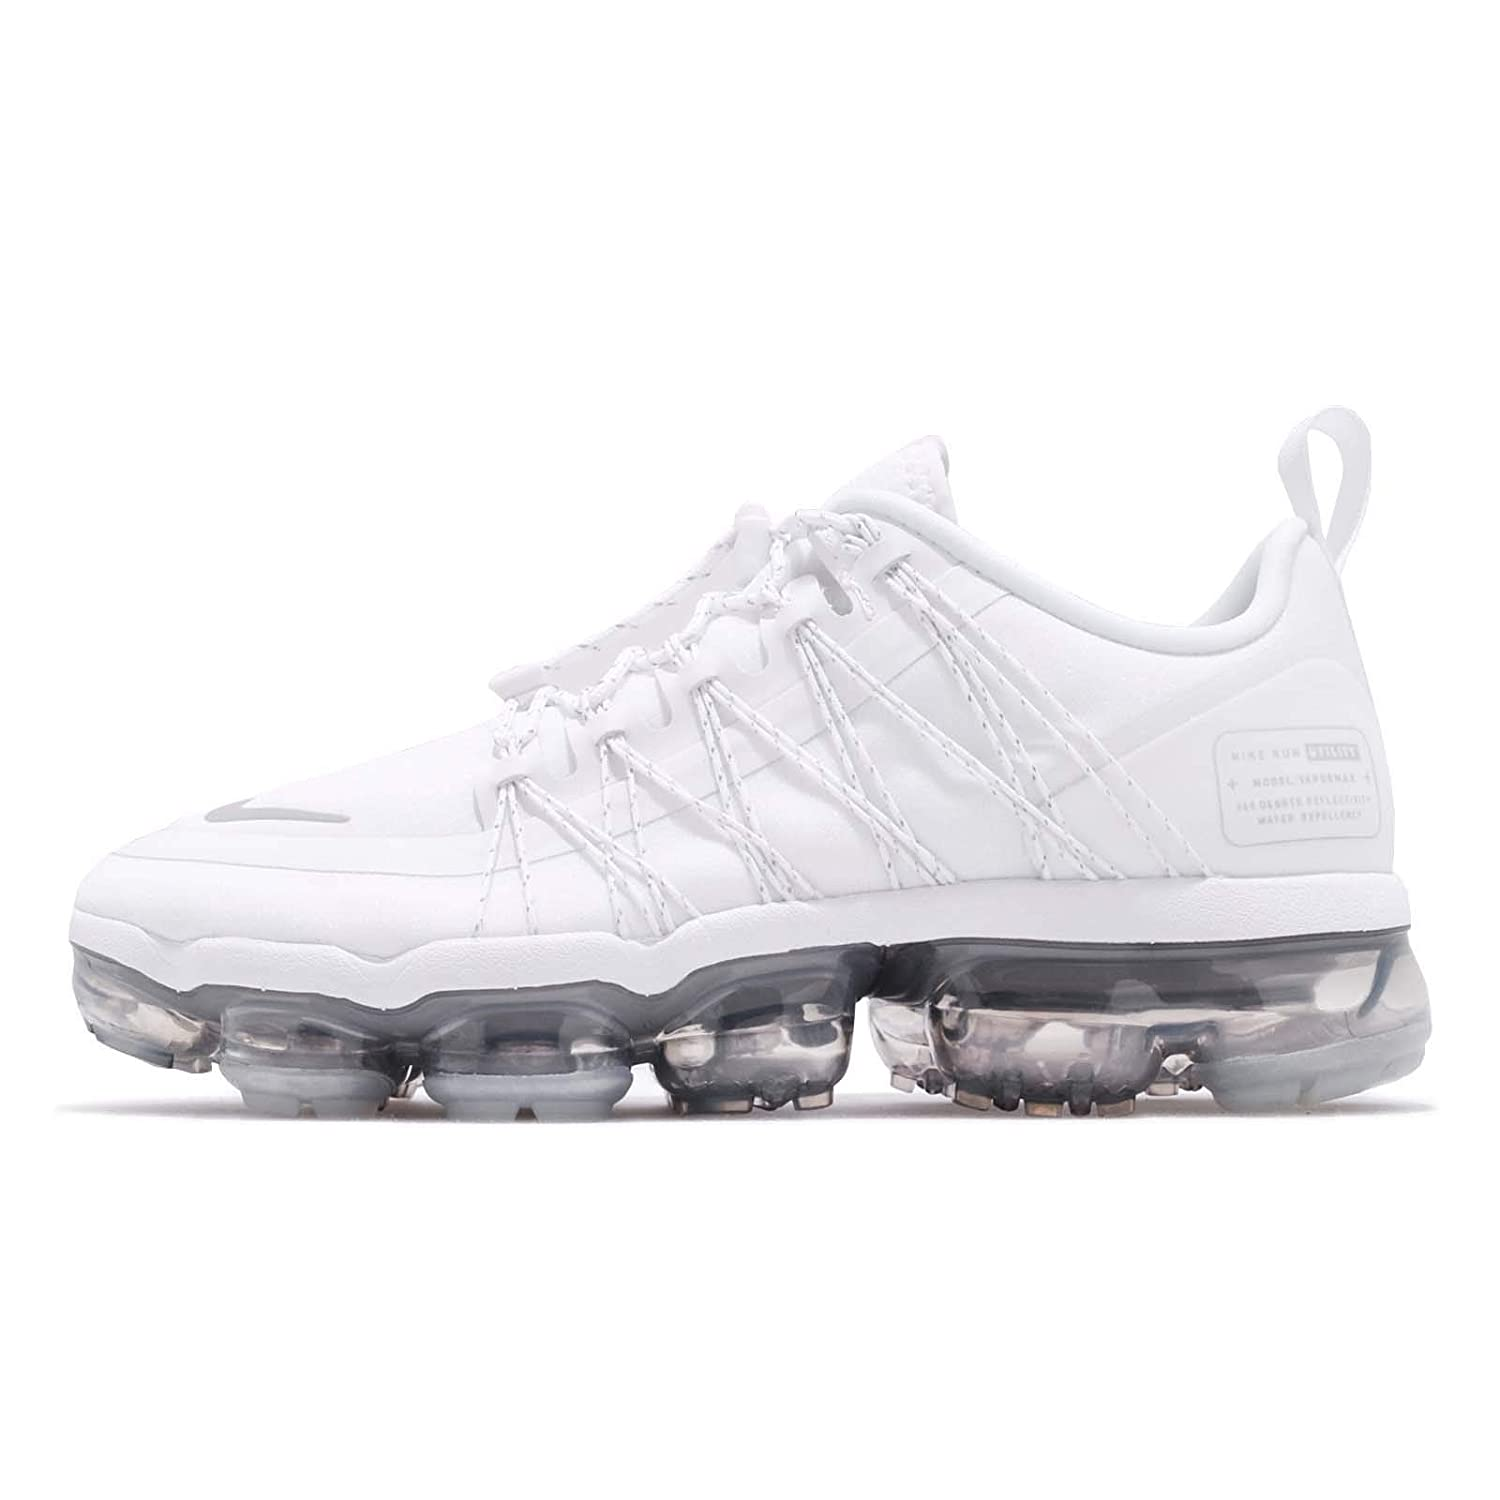 super popular 2b999 451b4 Amazon.com | Nike W Air Vapormax Run Utlty Womens Aq8811-100 ...